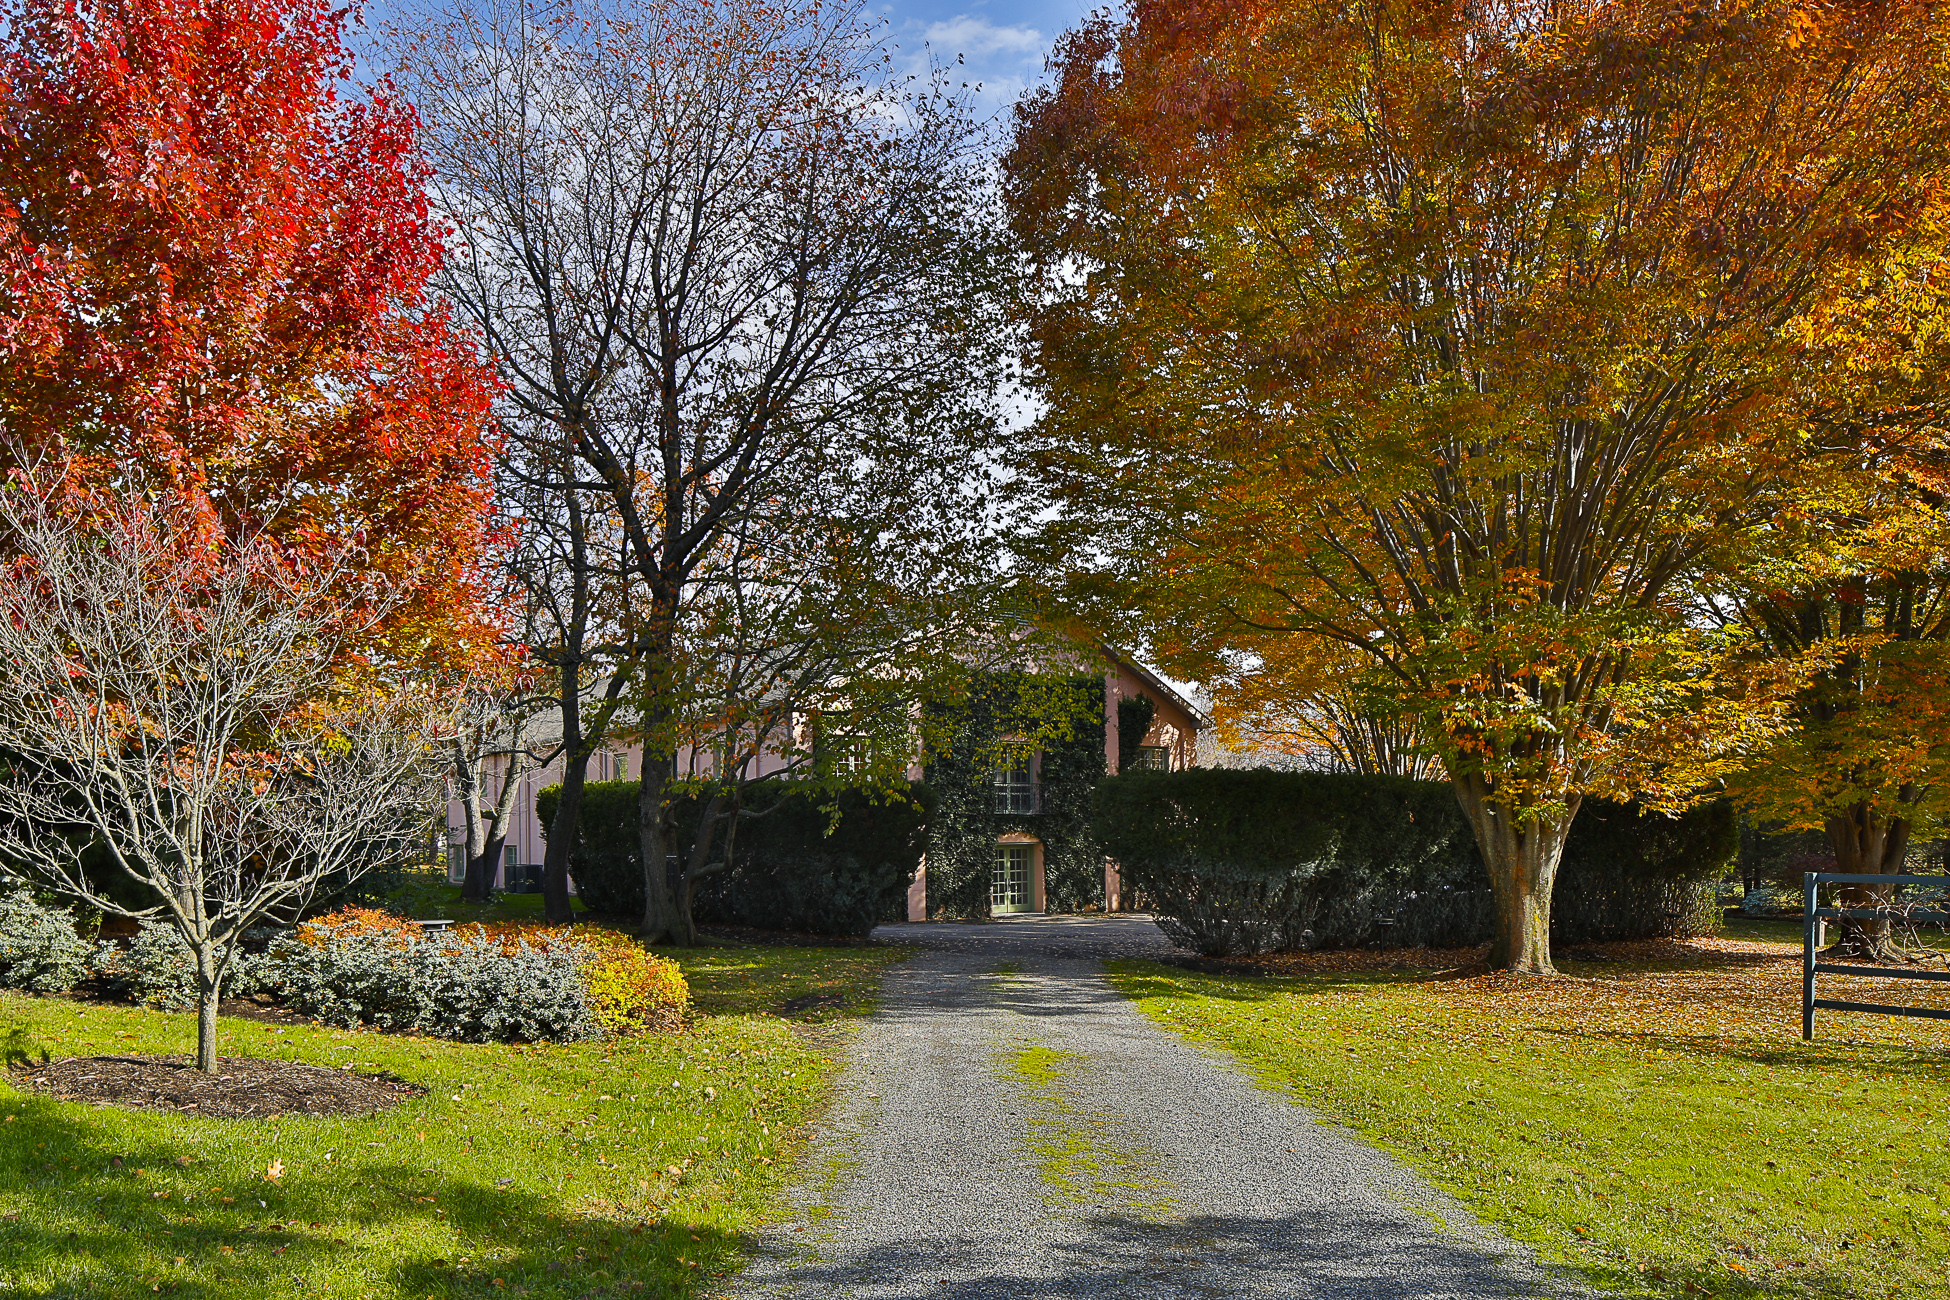 rentals property at Distinctive Architectural Vision - Hopewell Township